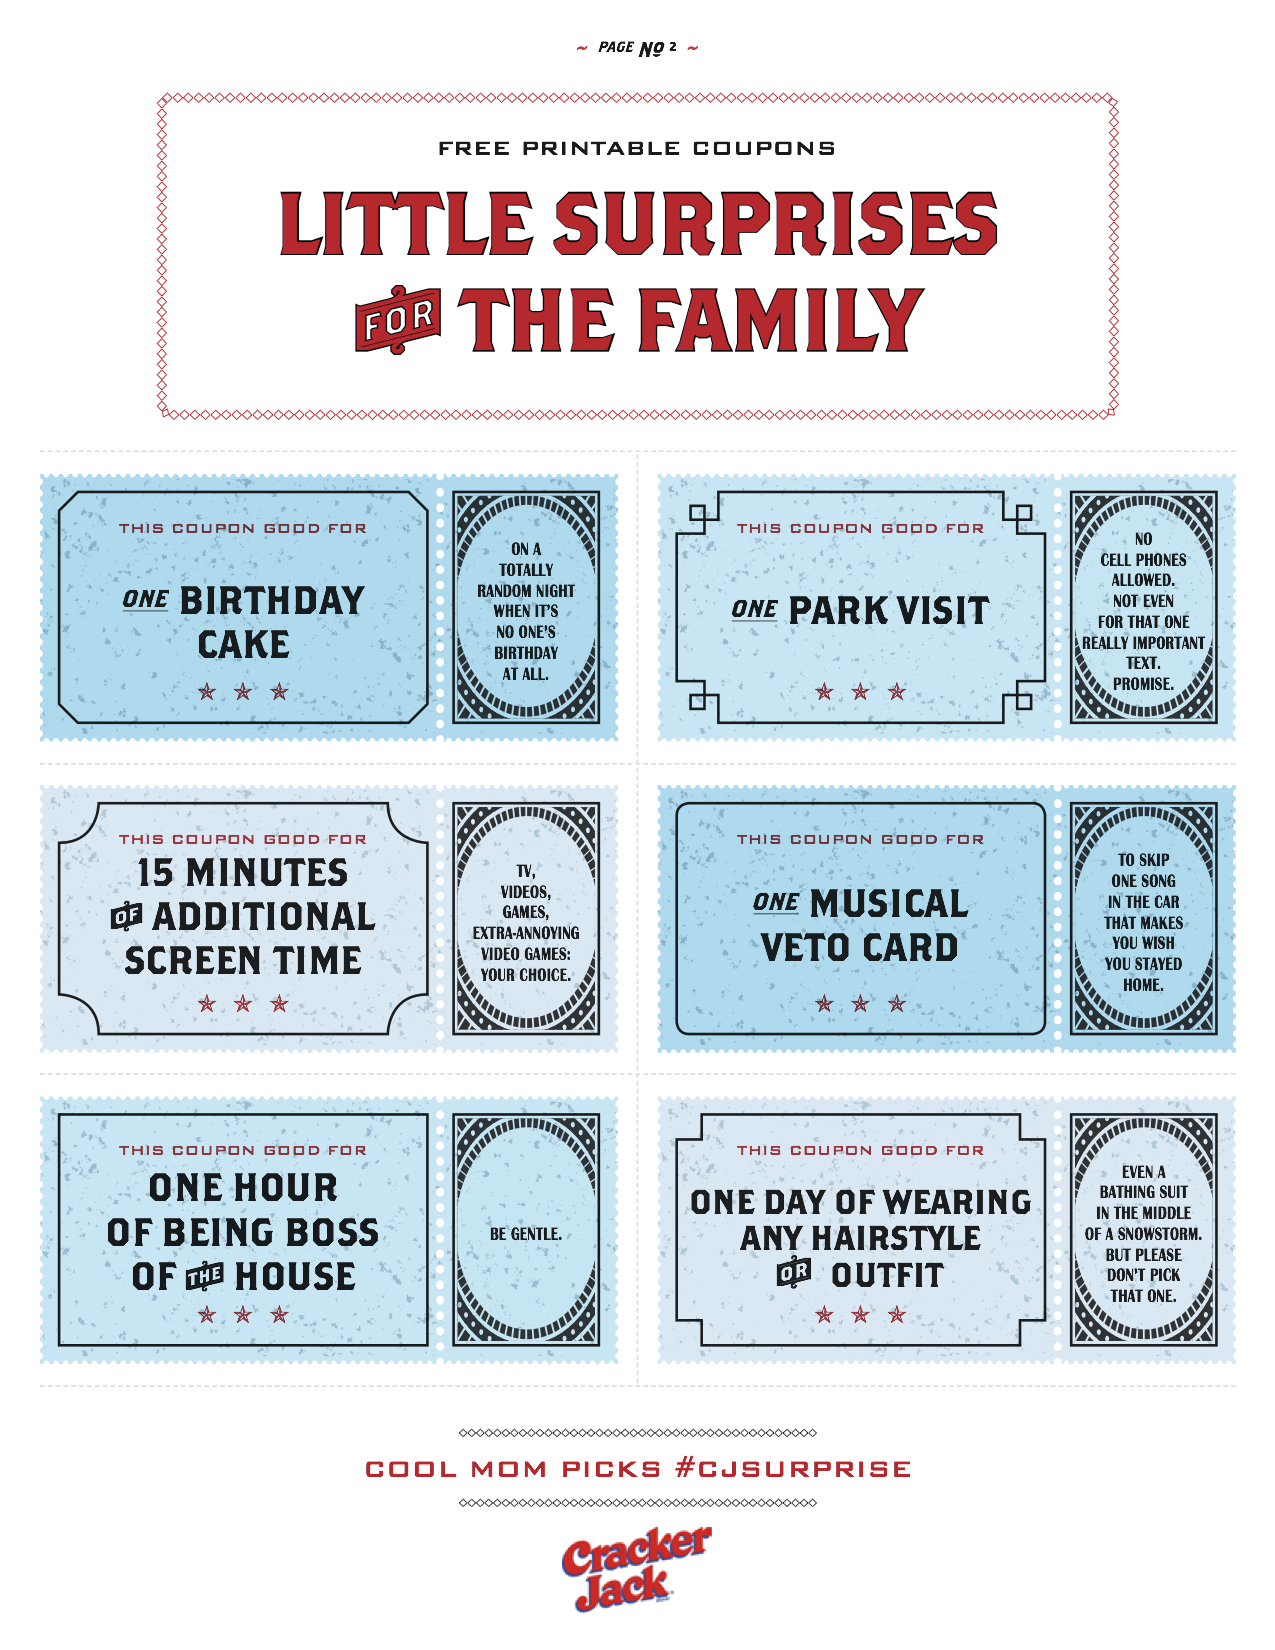 More Free Printable Coupons For Family Surprises You'll Love - Free Printable Coupons 2014